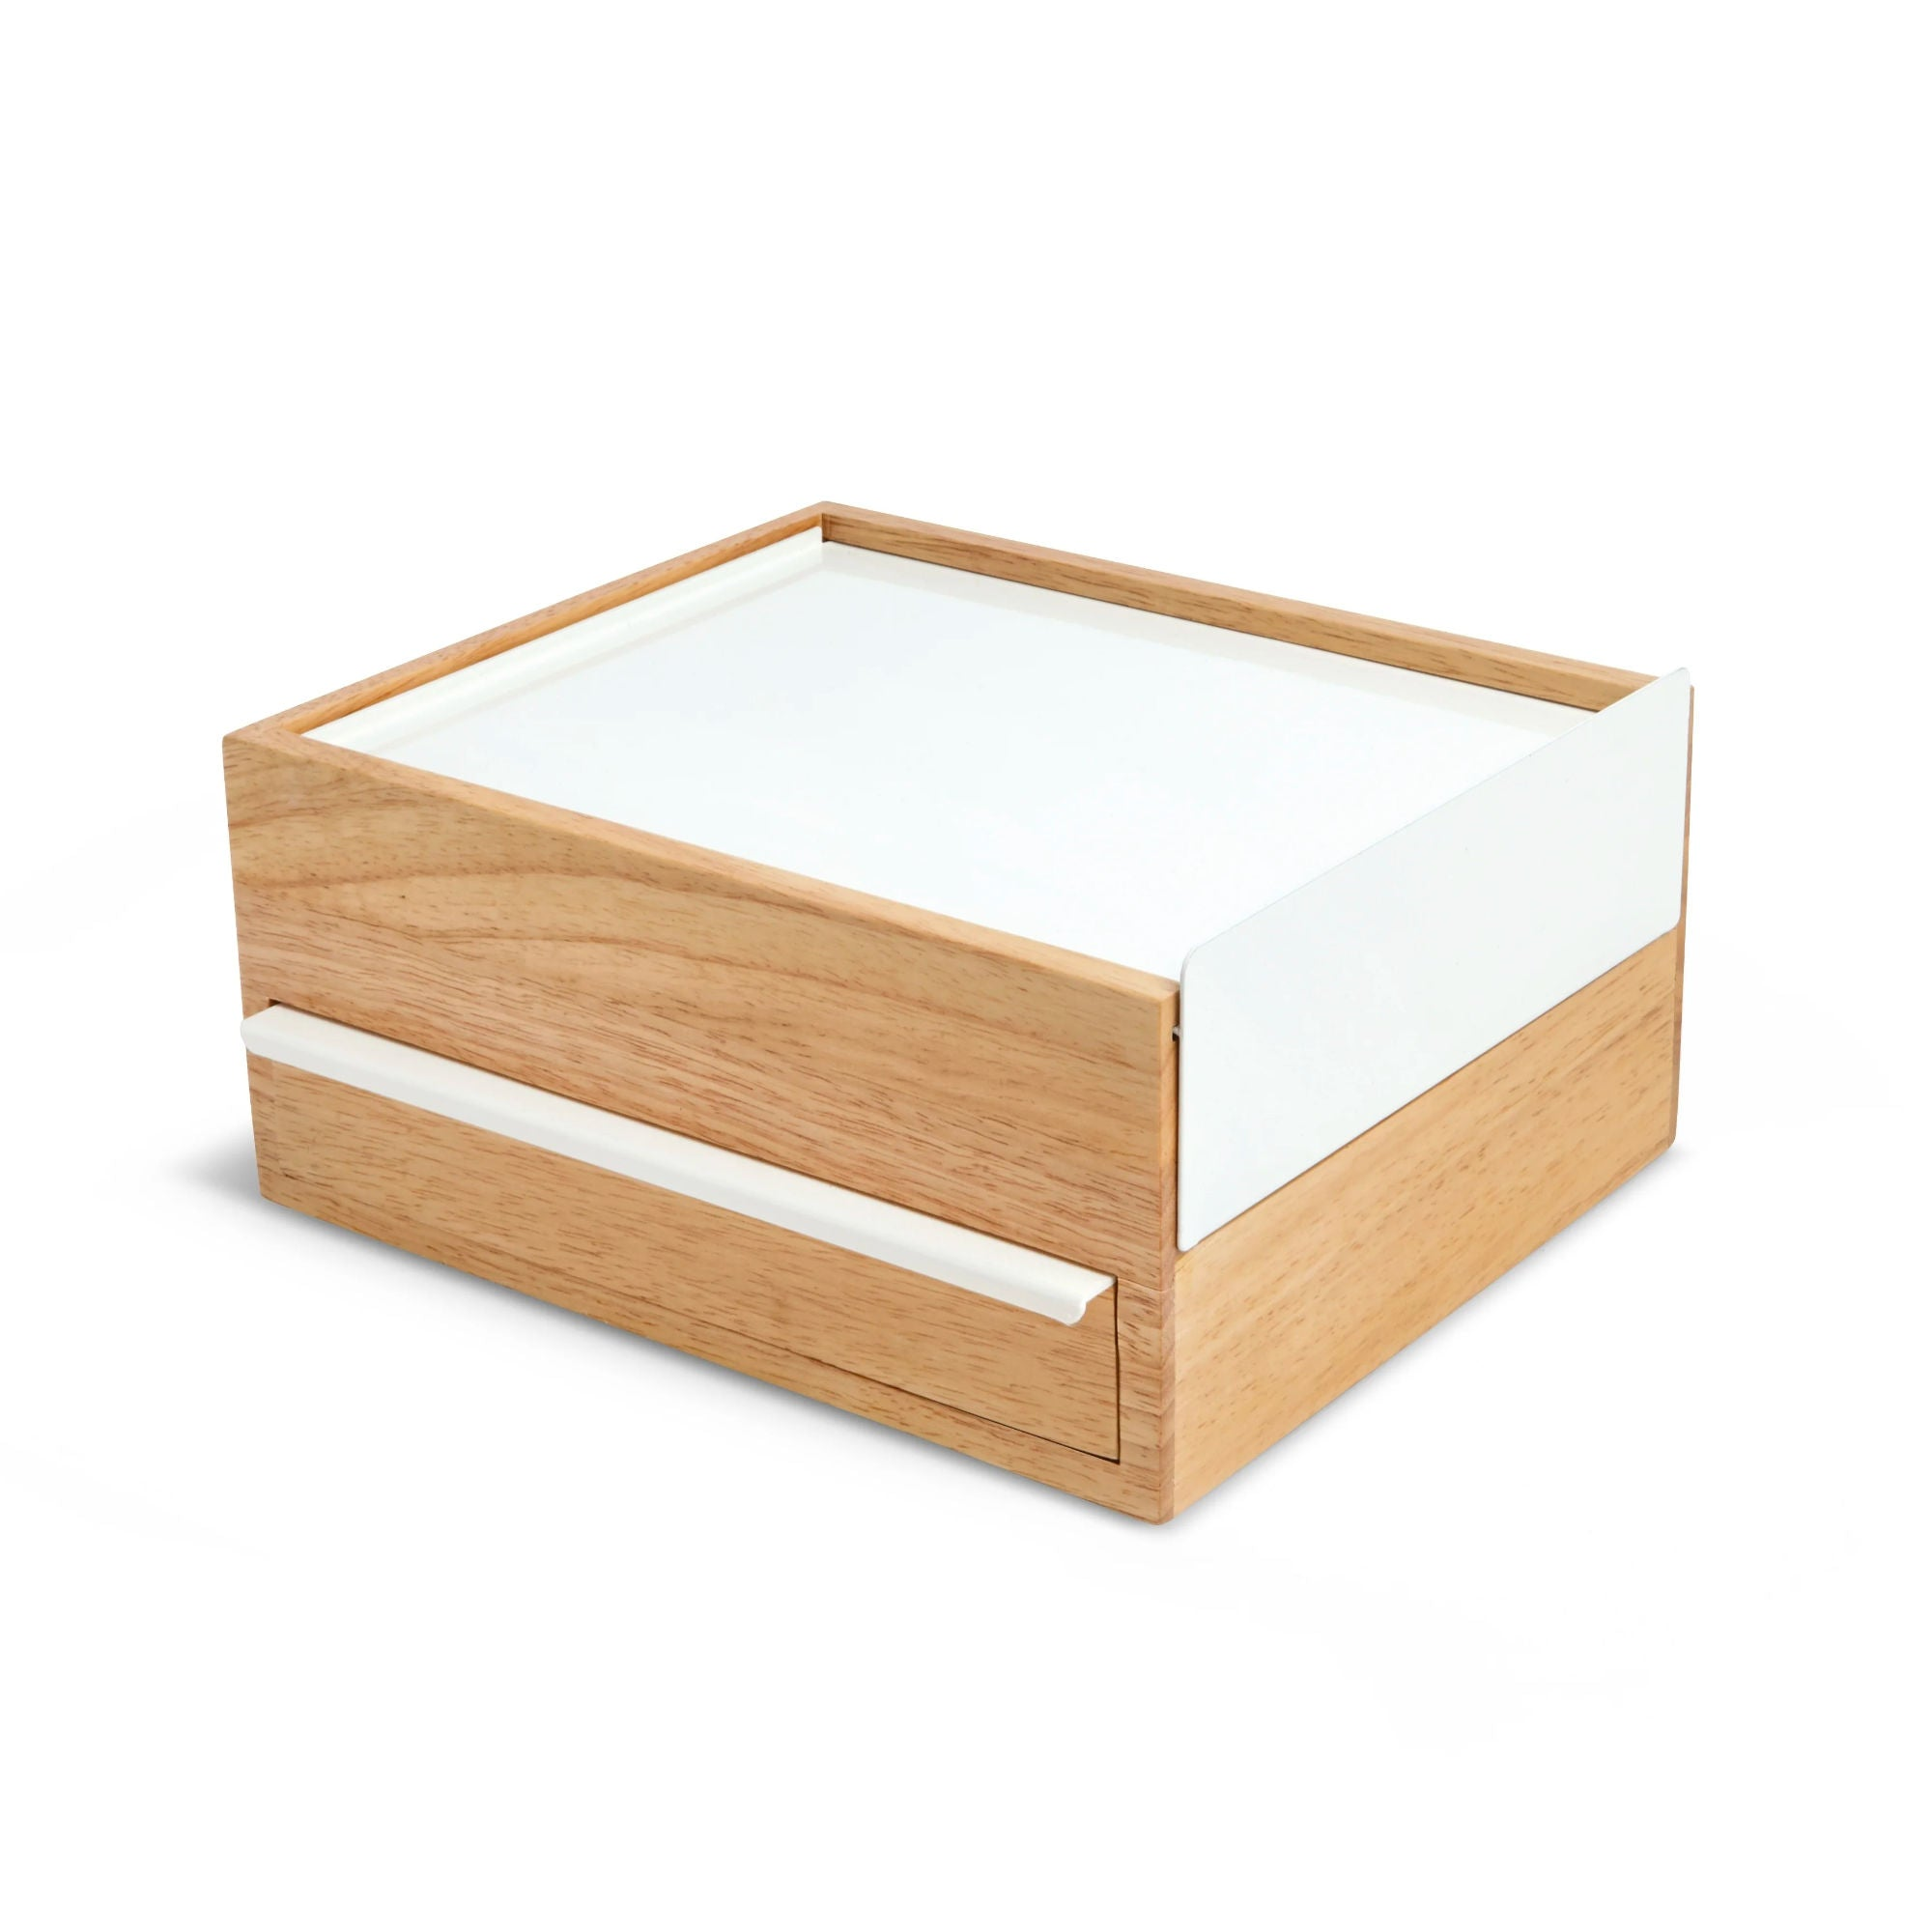 Stowit jewelry box natural, large